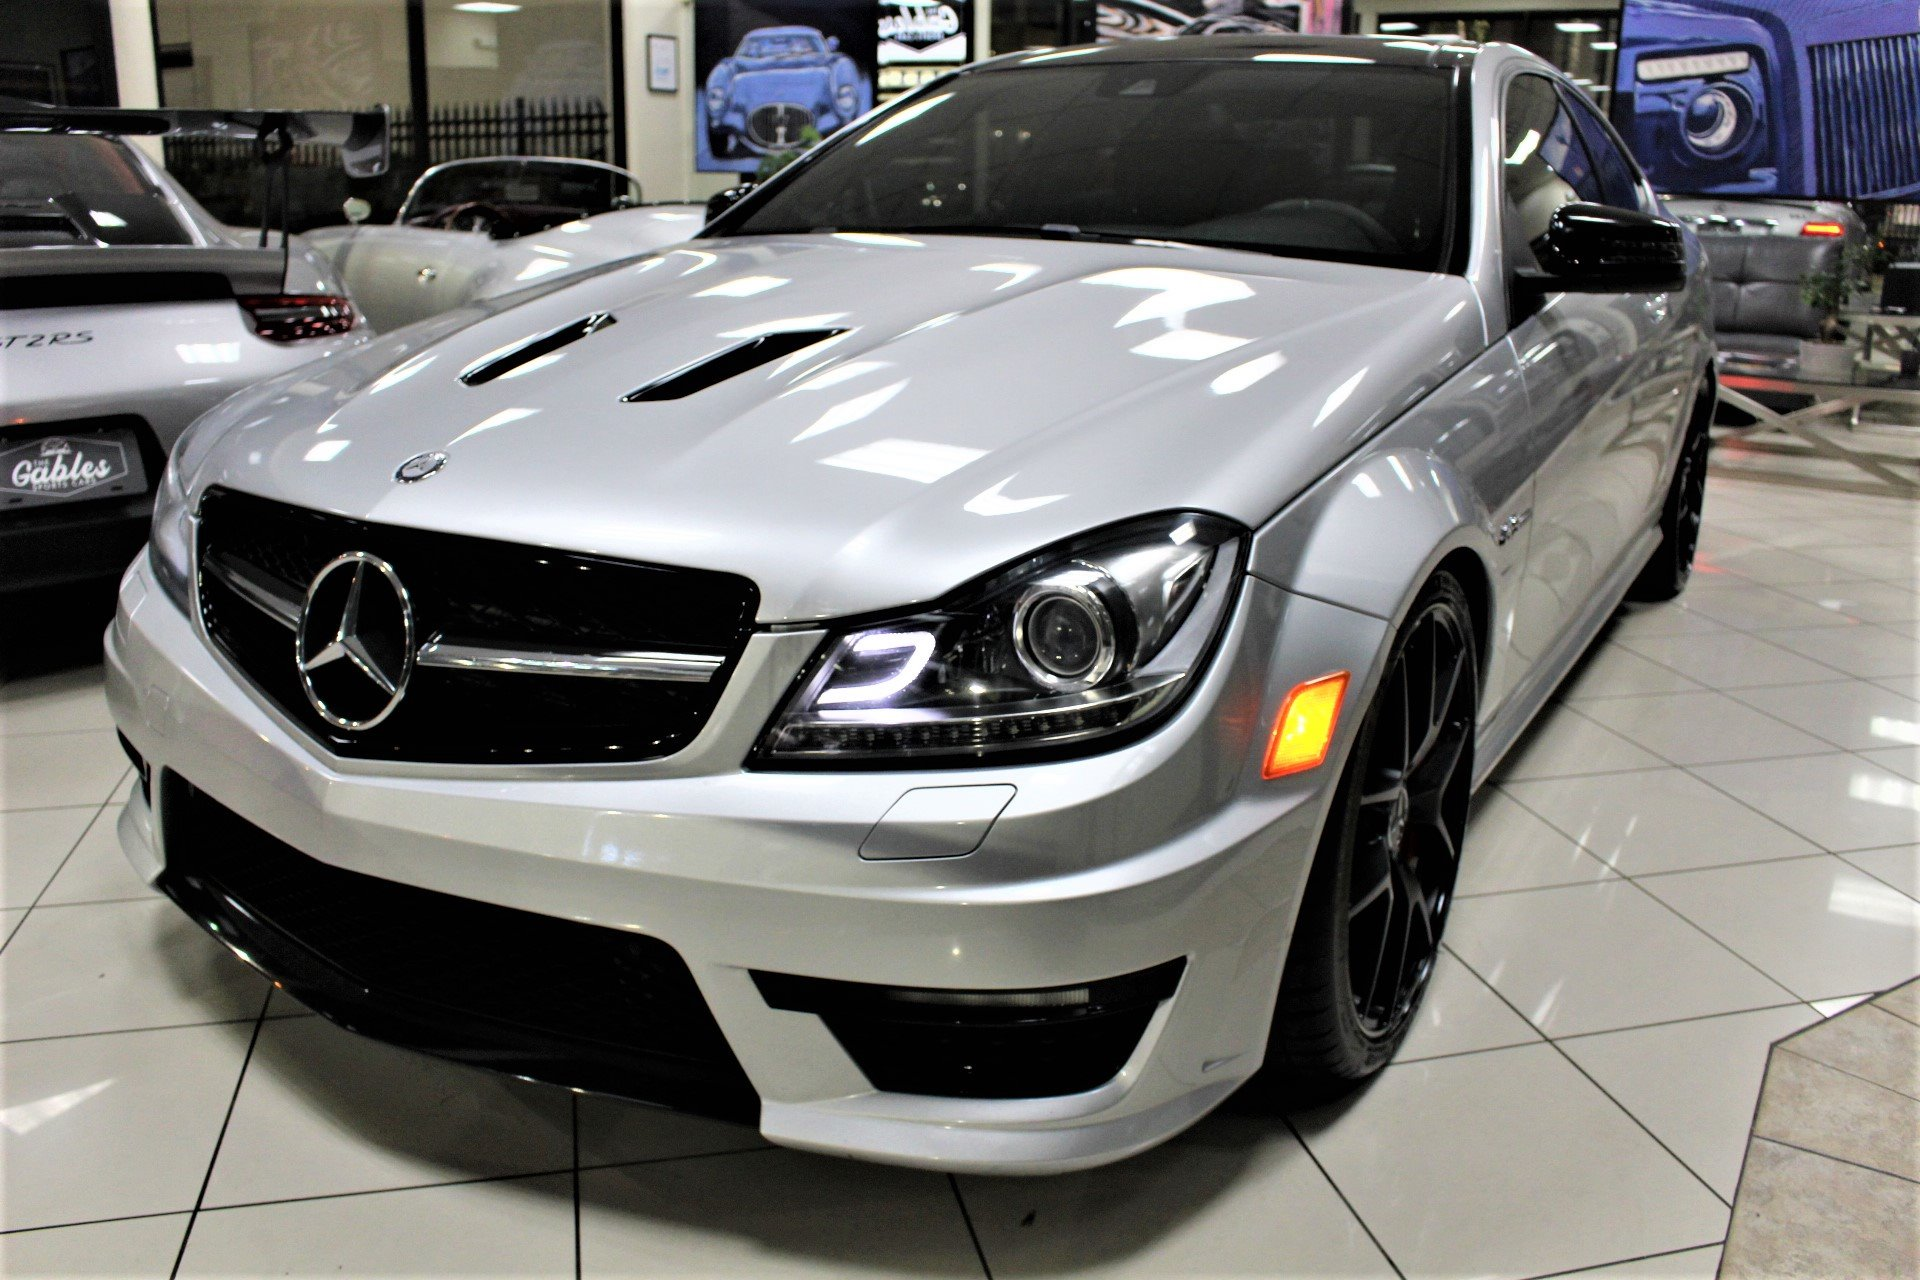 Used 2015 Mercedes-Benz C-Class C 63 AMG Edition 507 for sale $39,850 at The Gables Sports Cars in Miami FL 33146 3